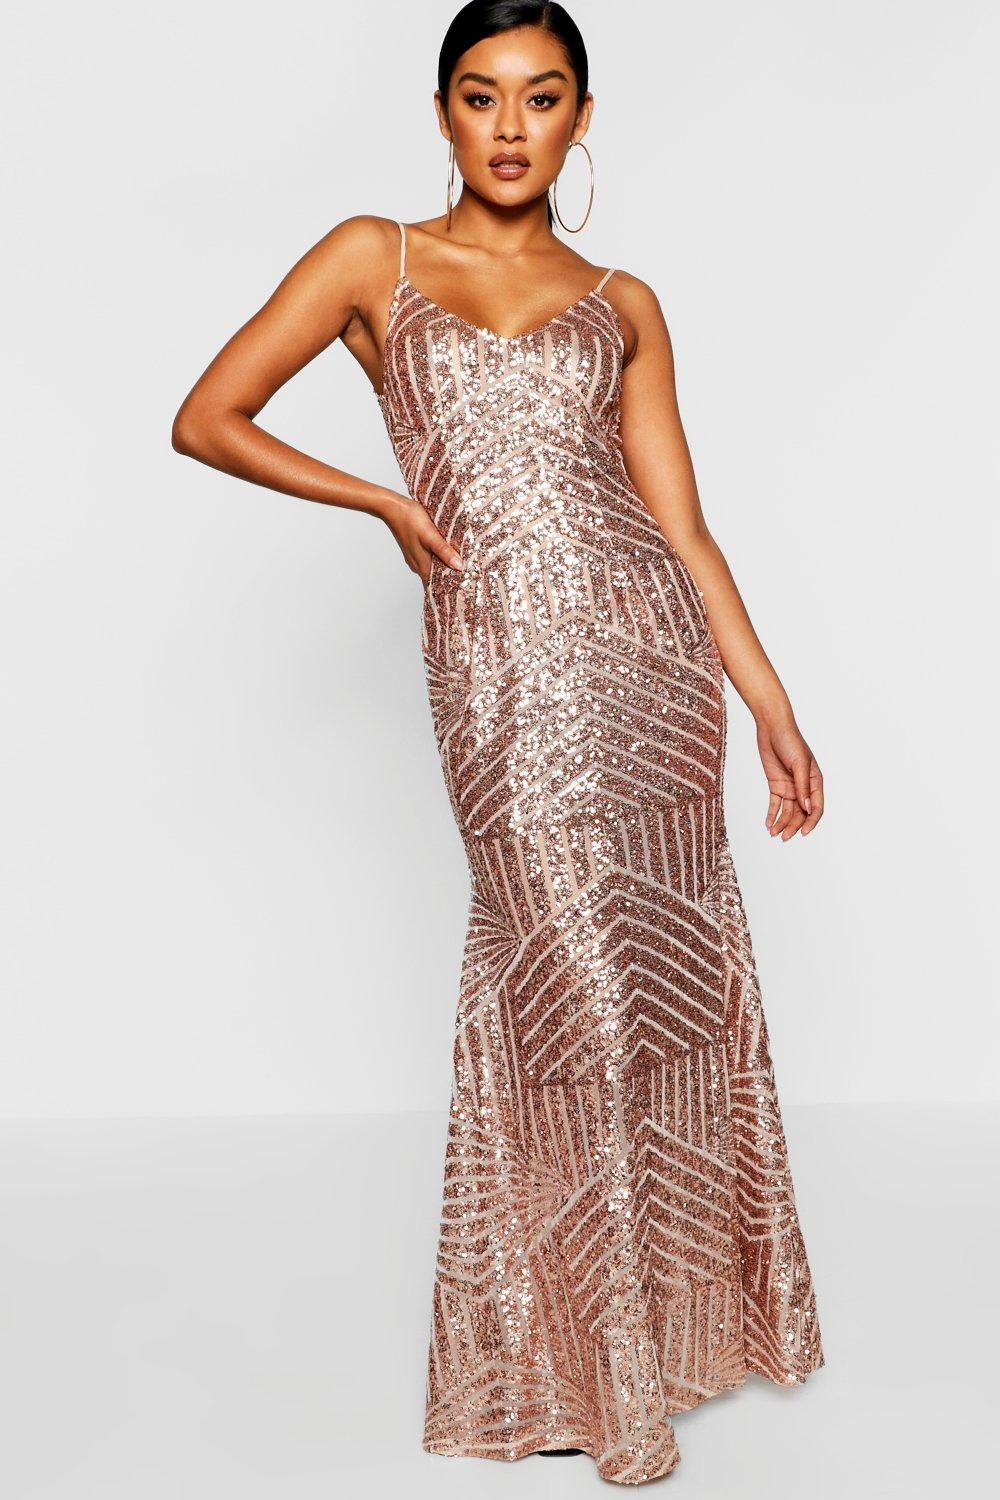 Vintage Evening Dresses and Formal Evening Gowns Womens Sequin  Mesh Strappy Maxi Dress - pink - 12 $49.00 AT vintagedancer.com